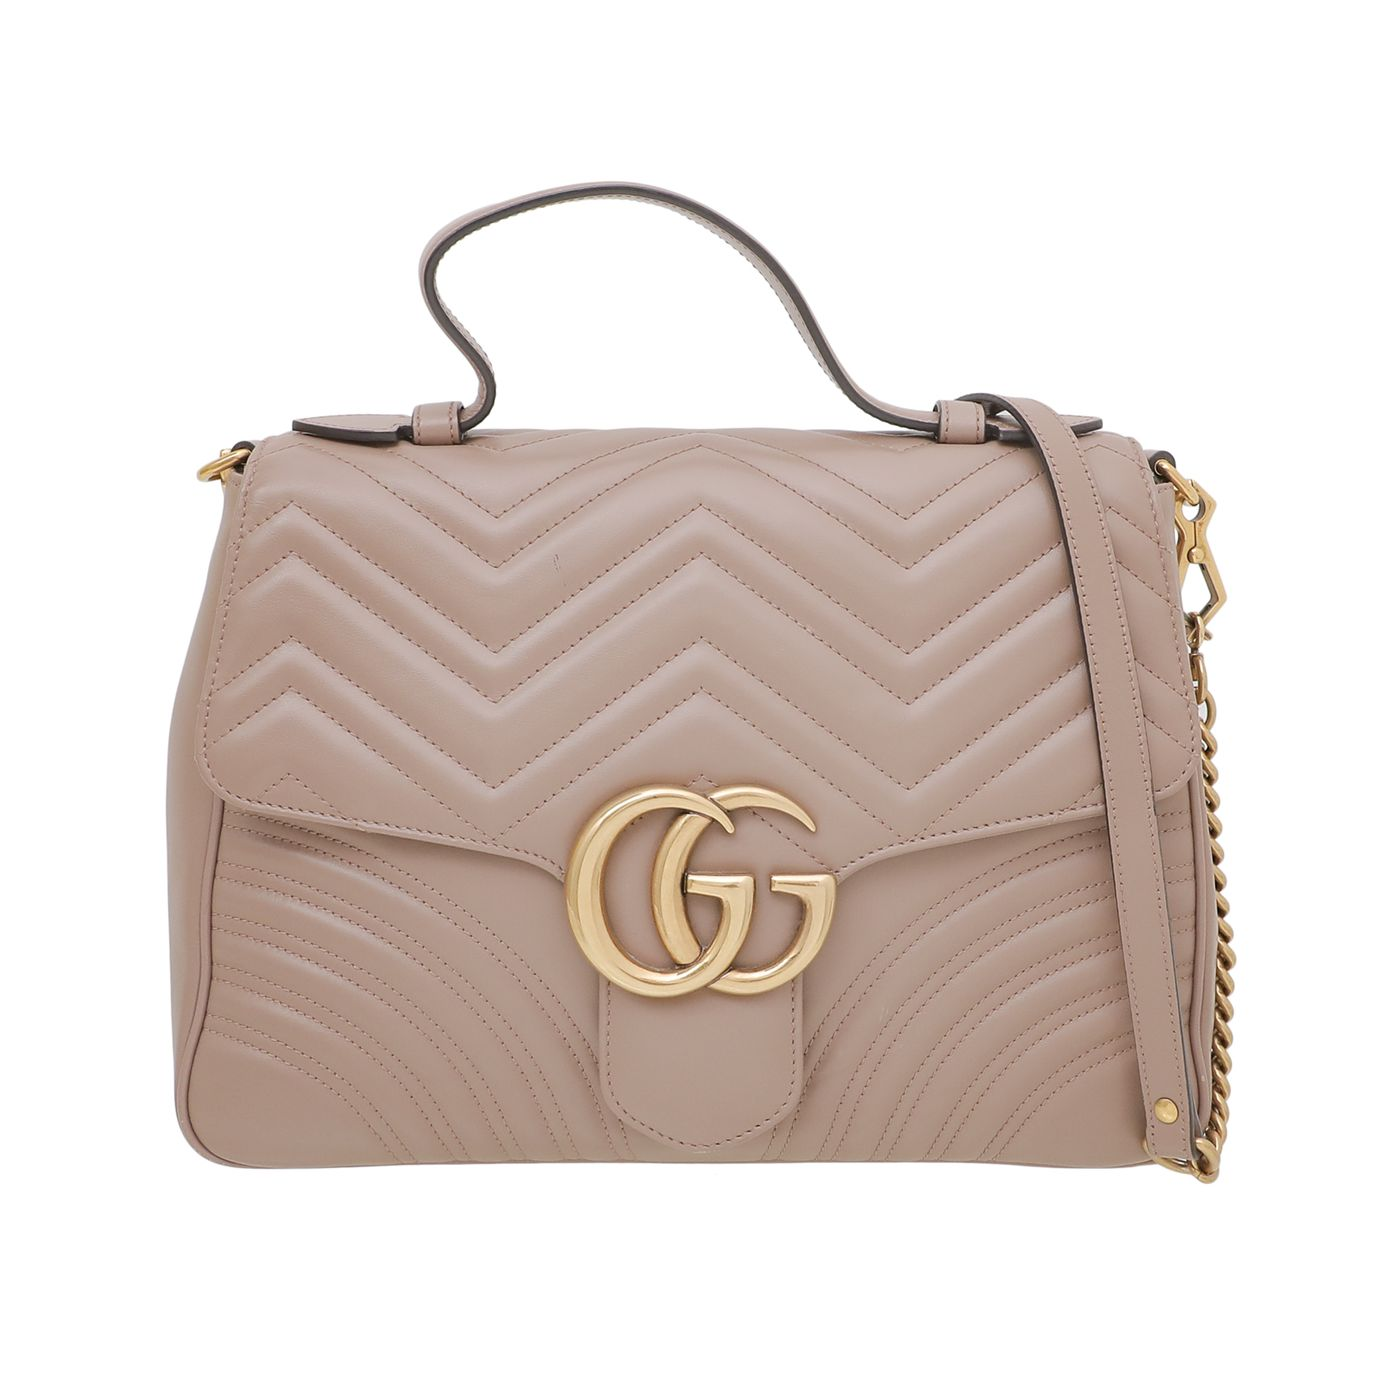 Gucci Dusty Pink GG Marmont Top Handle Bag